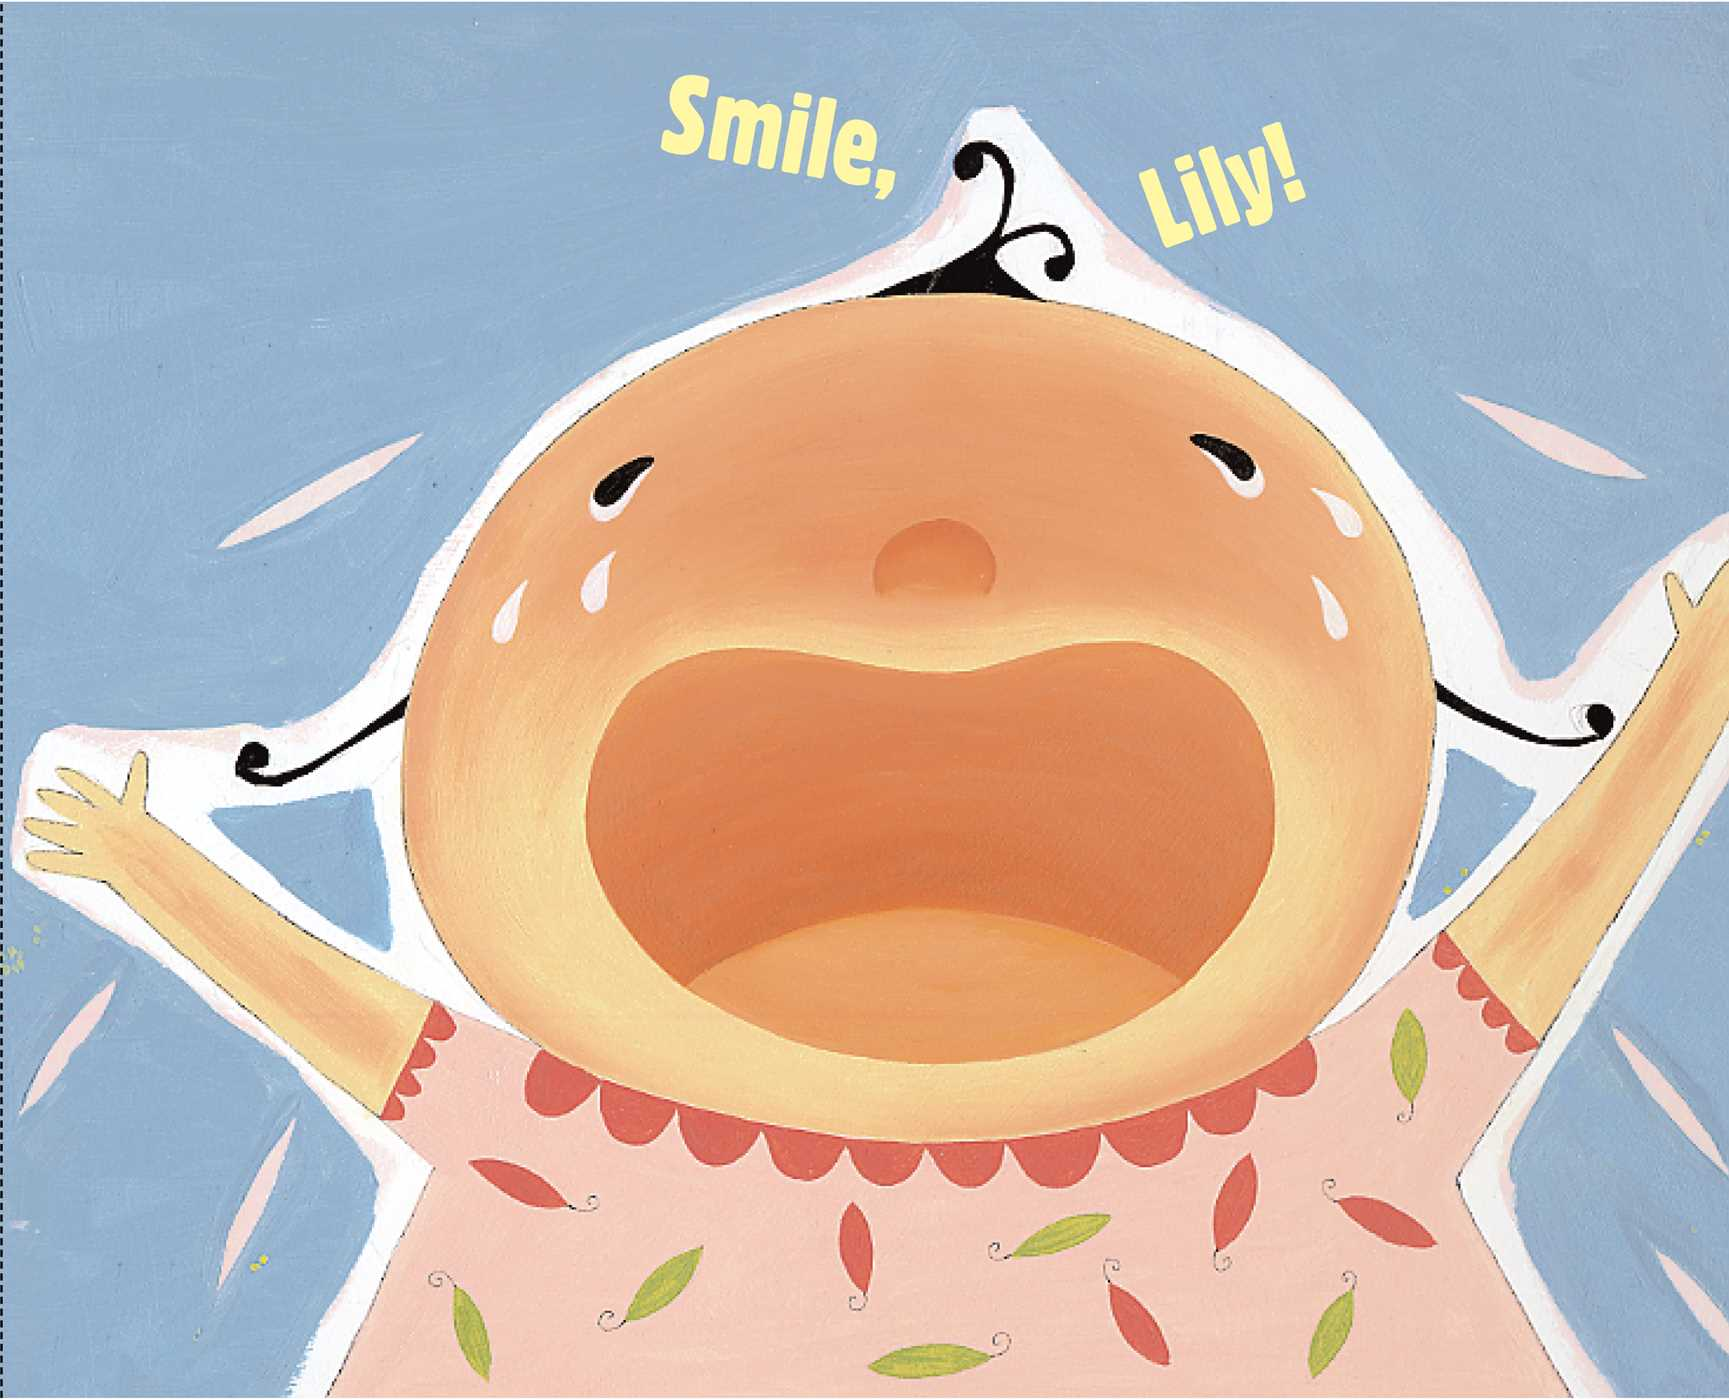 Smile lily 9781481417945 hr